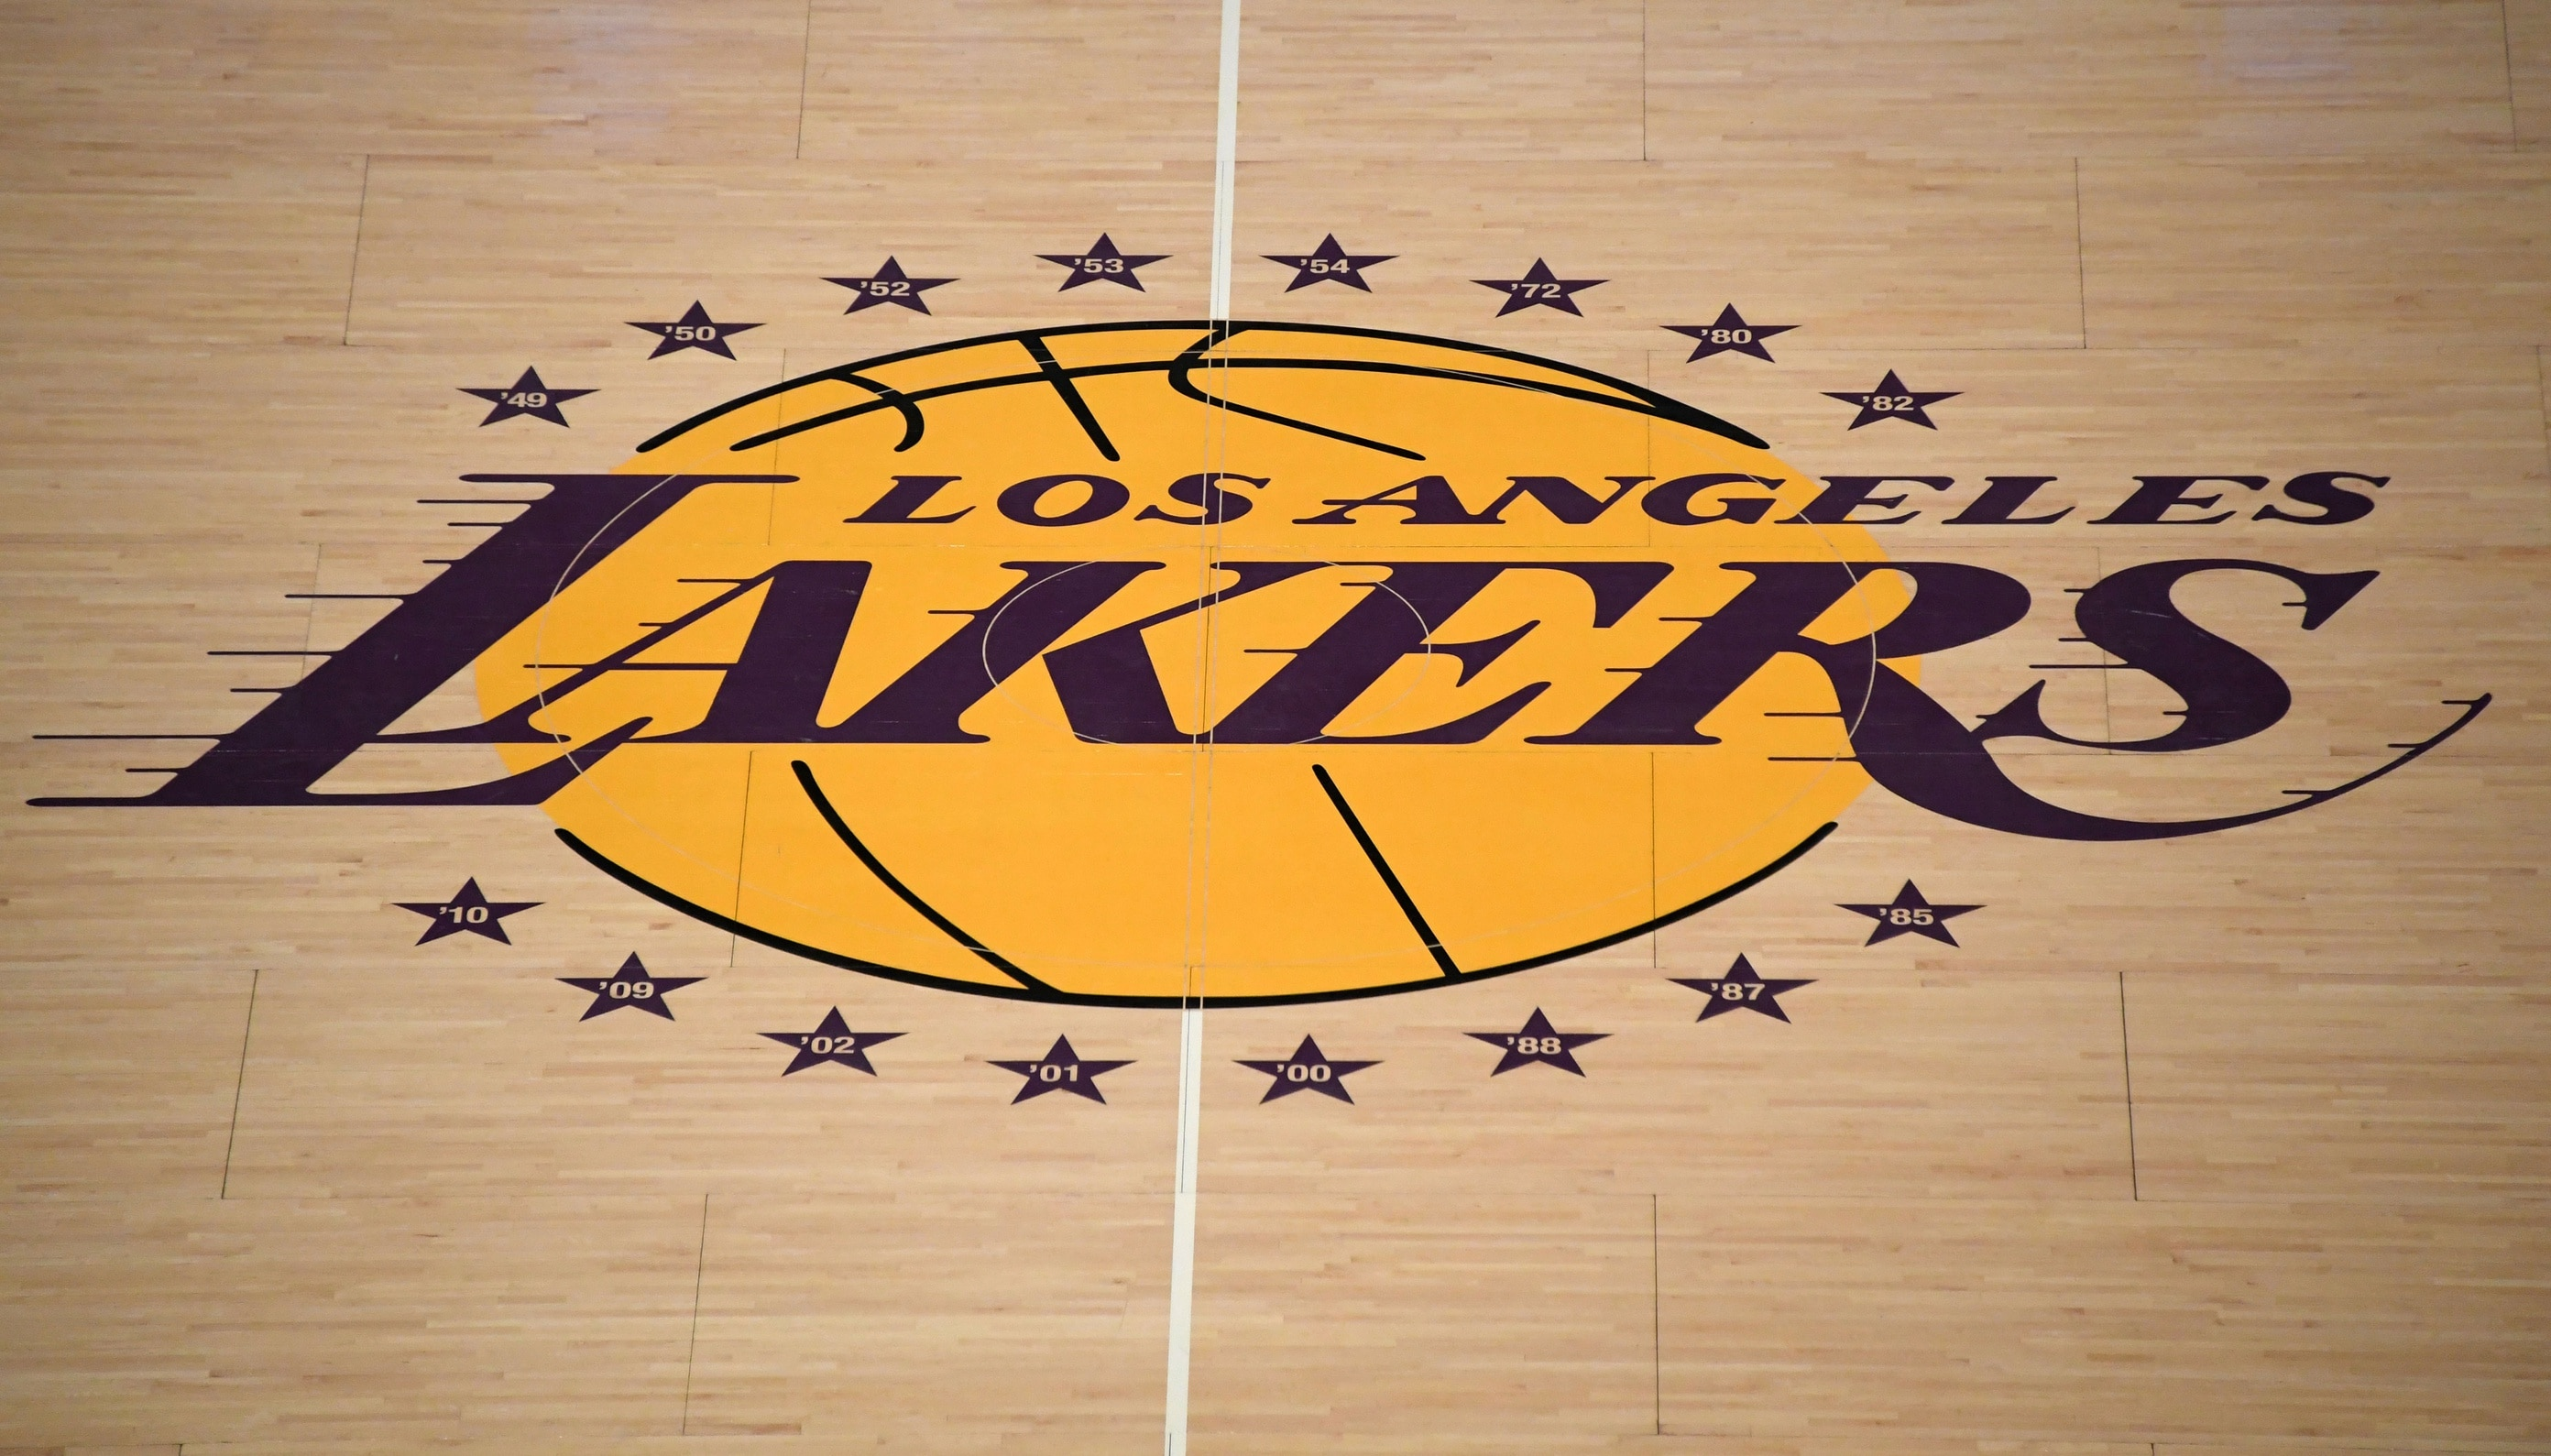 Report: Two Lakers' players tested positive for coronavirus